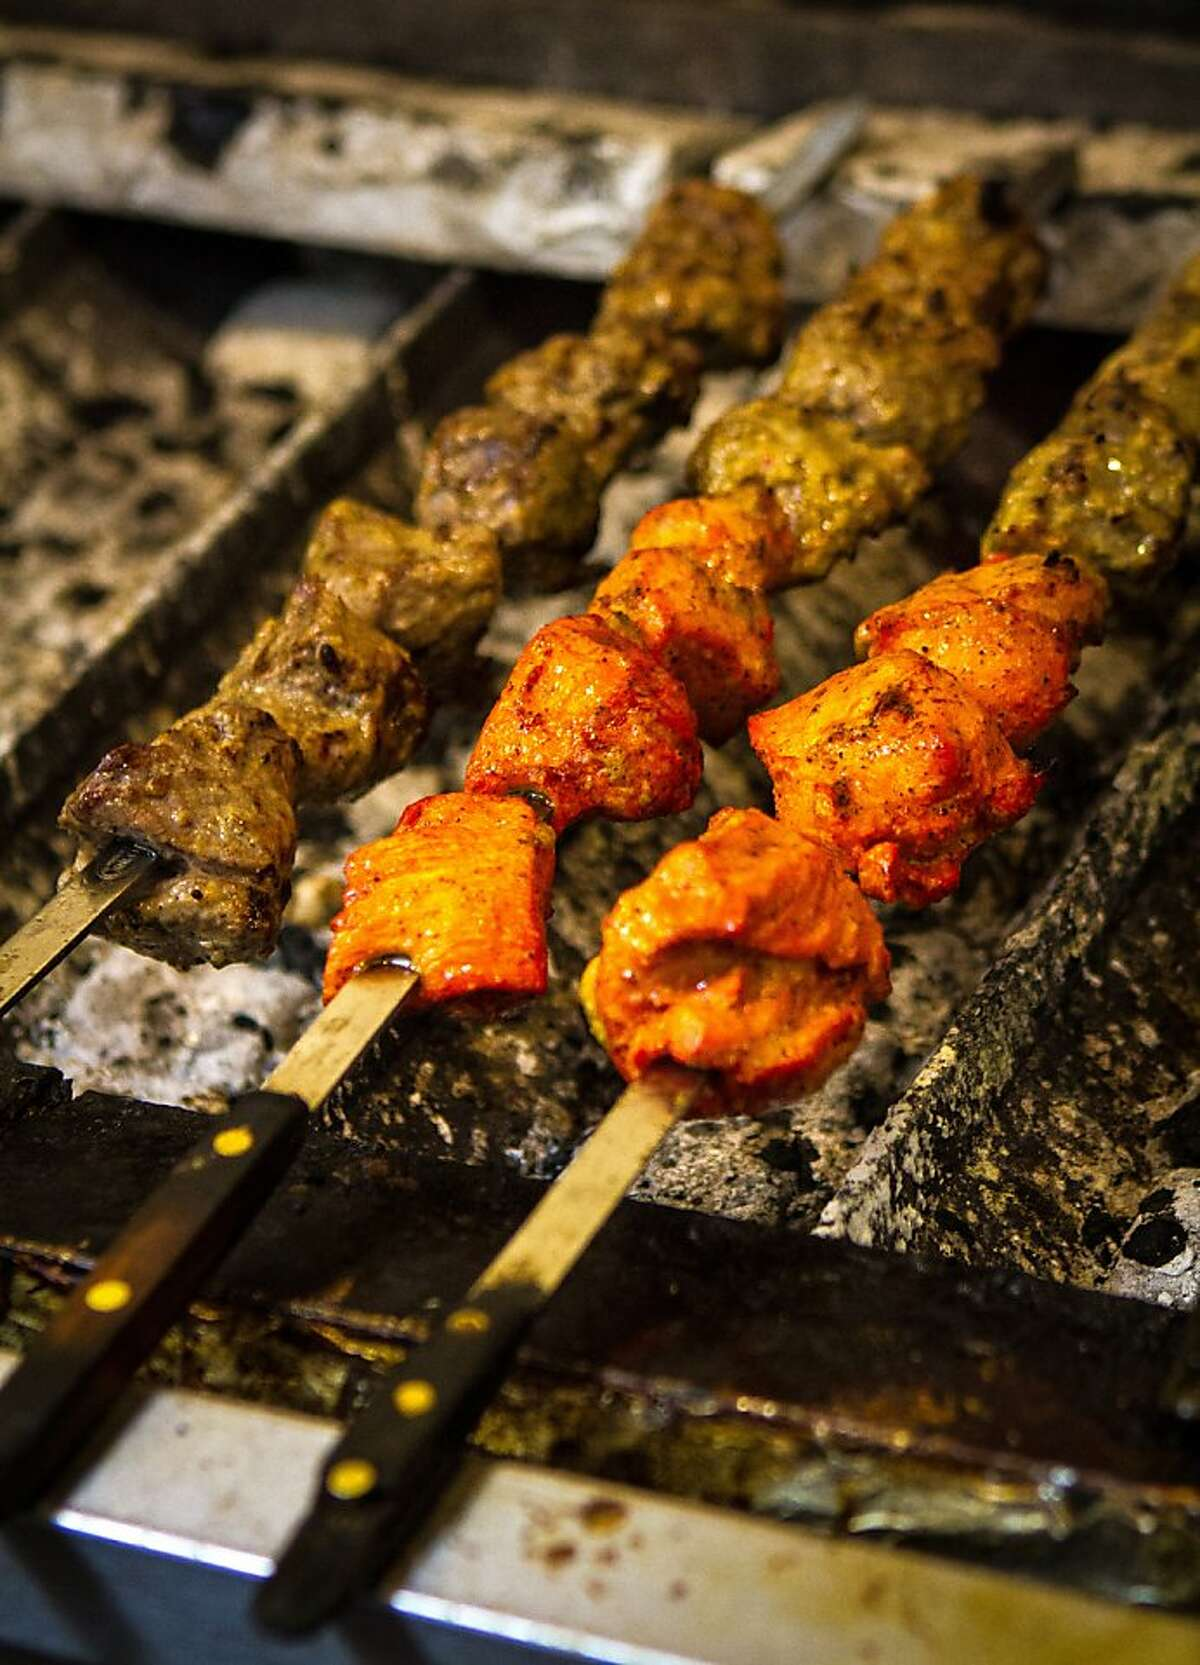 Kabobs being grilled at De Afghanan restaurant in Livermore, Calif., on Thursday, December 6th, 2012.